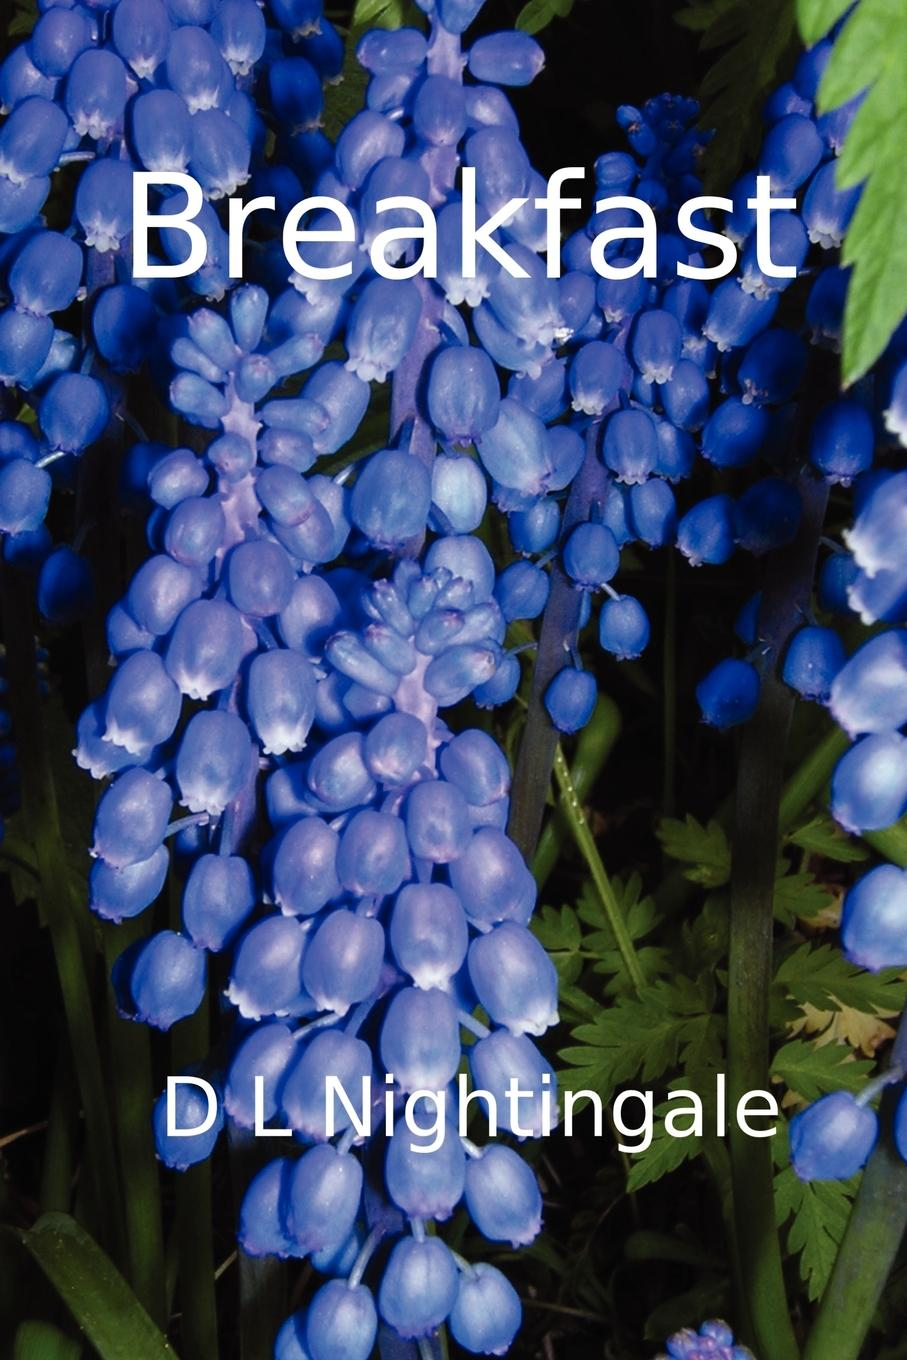 D. L. Nightingale Breakfast chloe seager editing emma online you can choose who you want to be if only real life were so easy